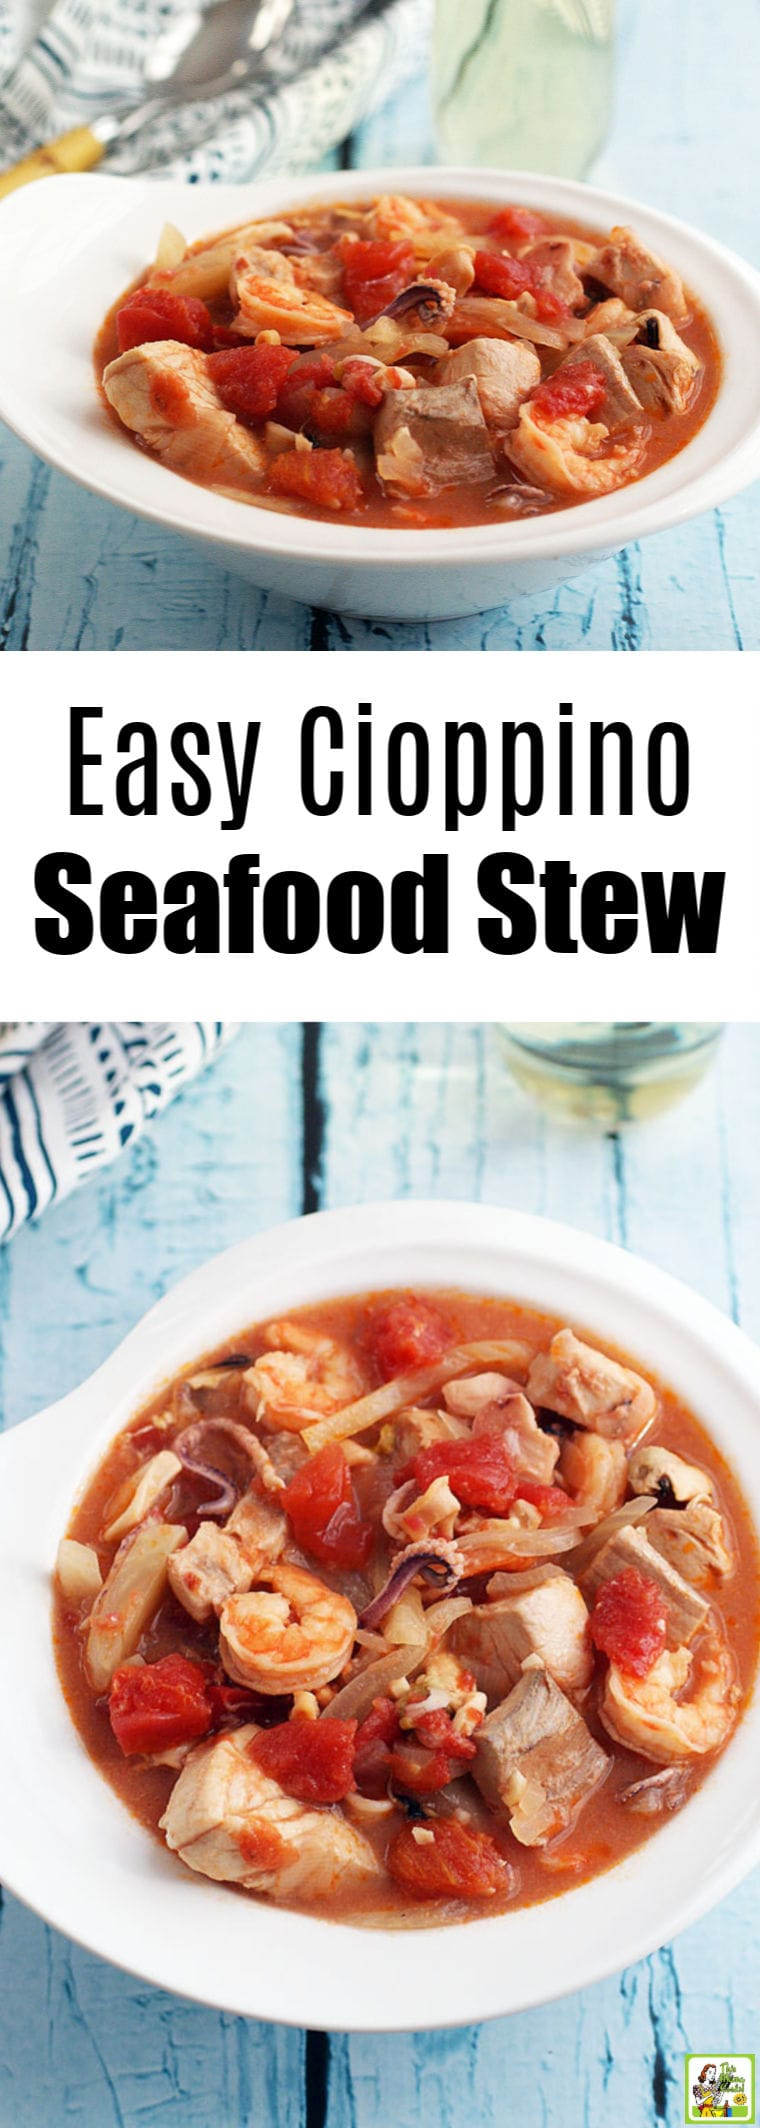 Need a fish stew recipe? Try this easy cioppino seafood stew recipe. This Italian seafood stew uses fish, shrimp, and a frozen seafood mix. #cioppino #cioppinorecipe #fish #stew #seafood #seafoodrecipe #shrimp #soup #italian #fishsoup #glutenfree #keto